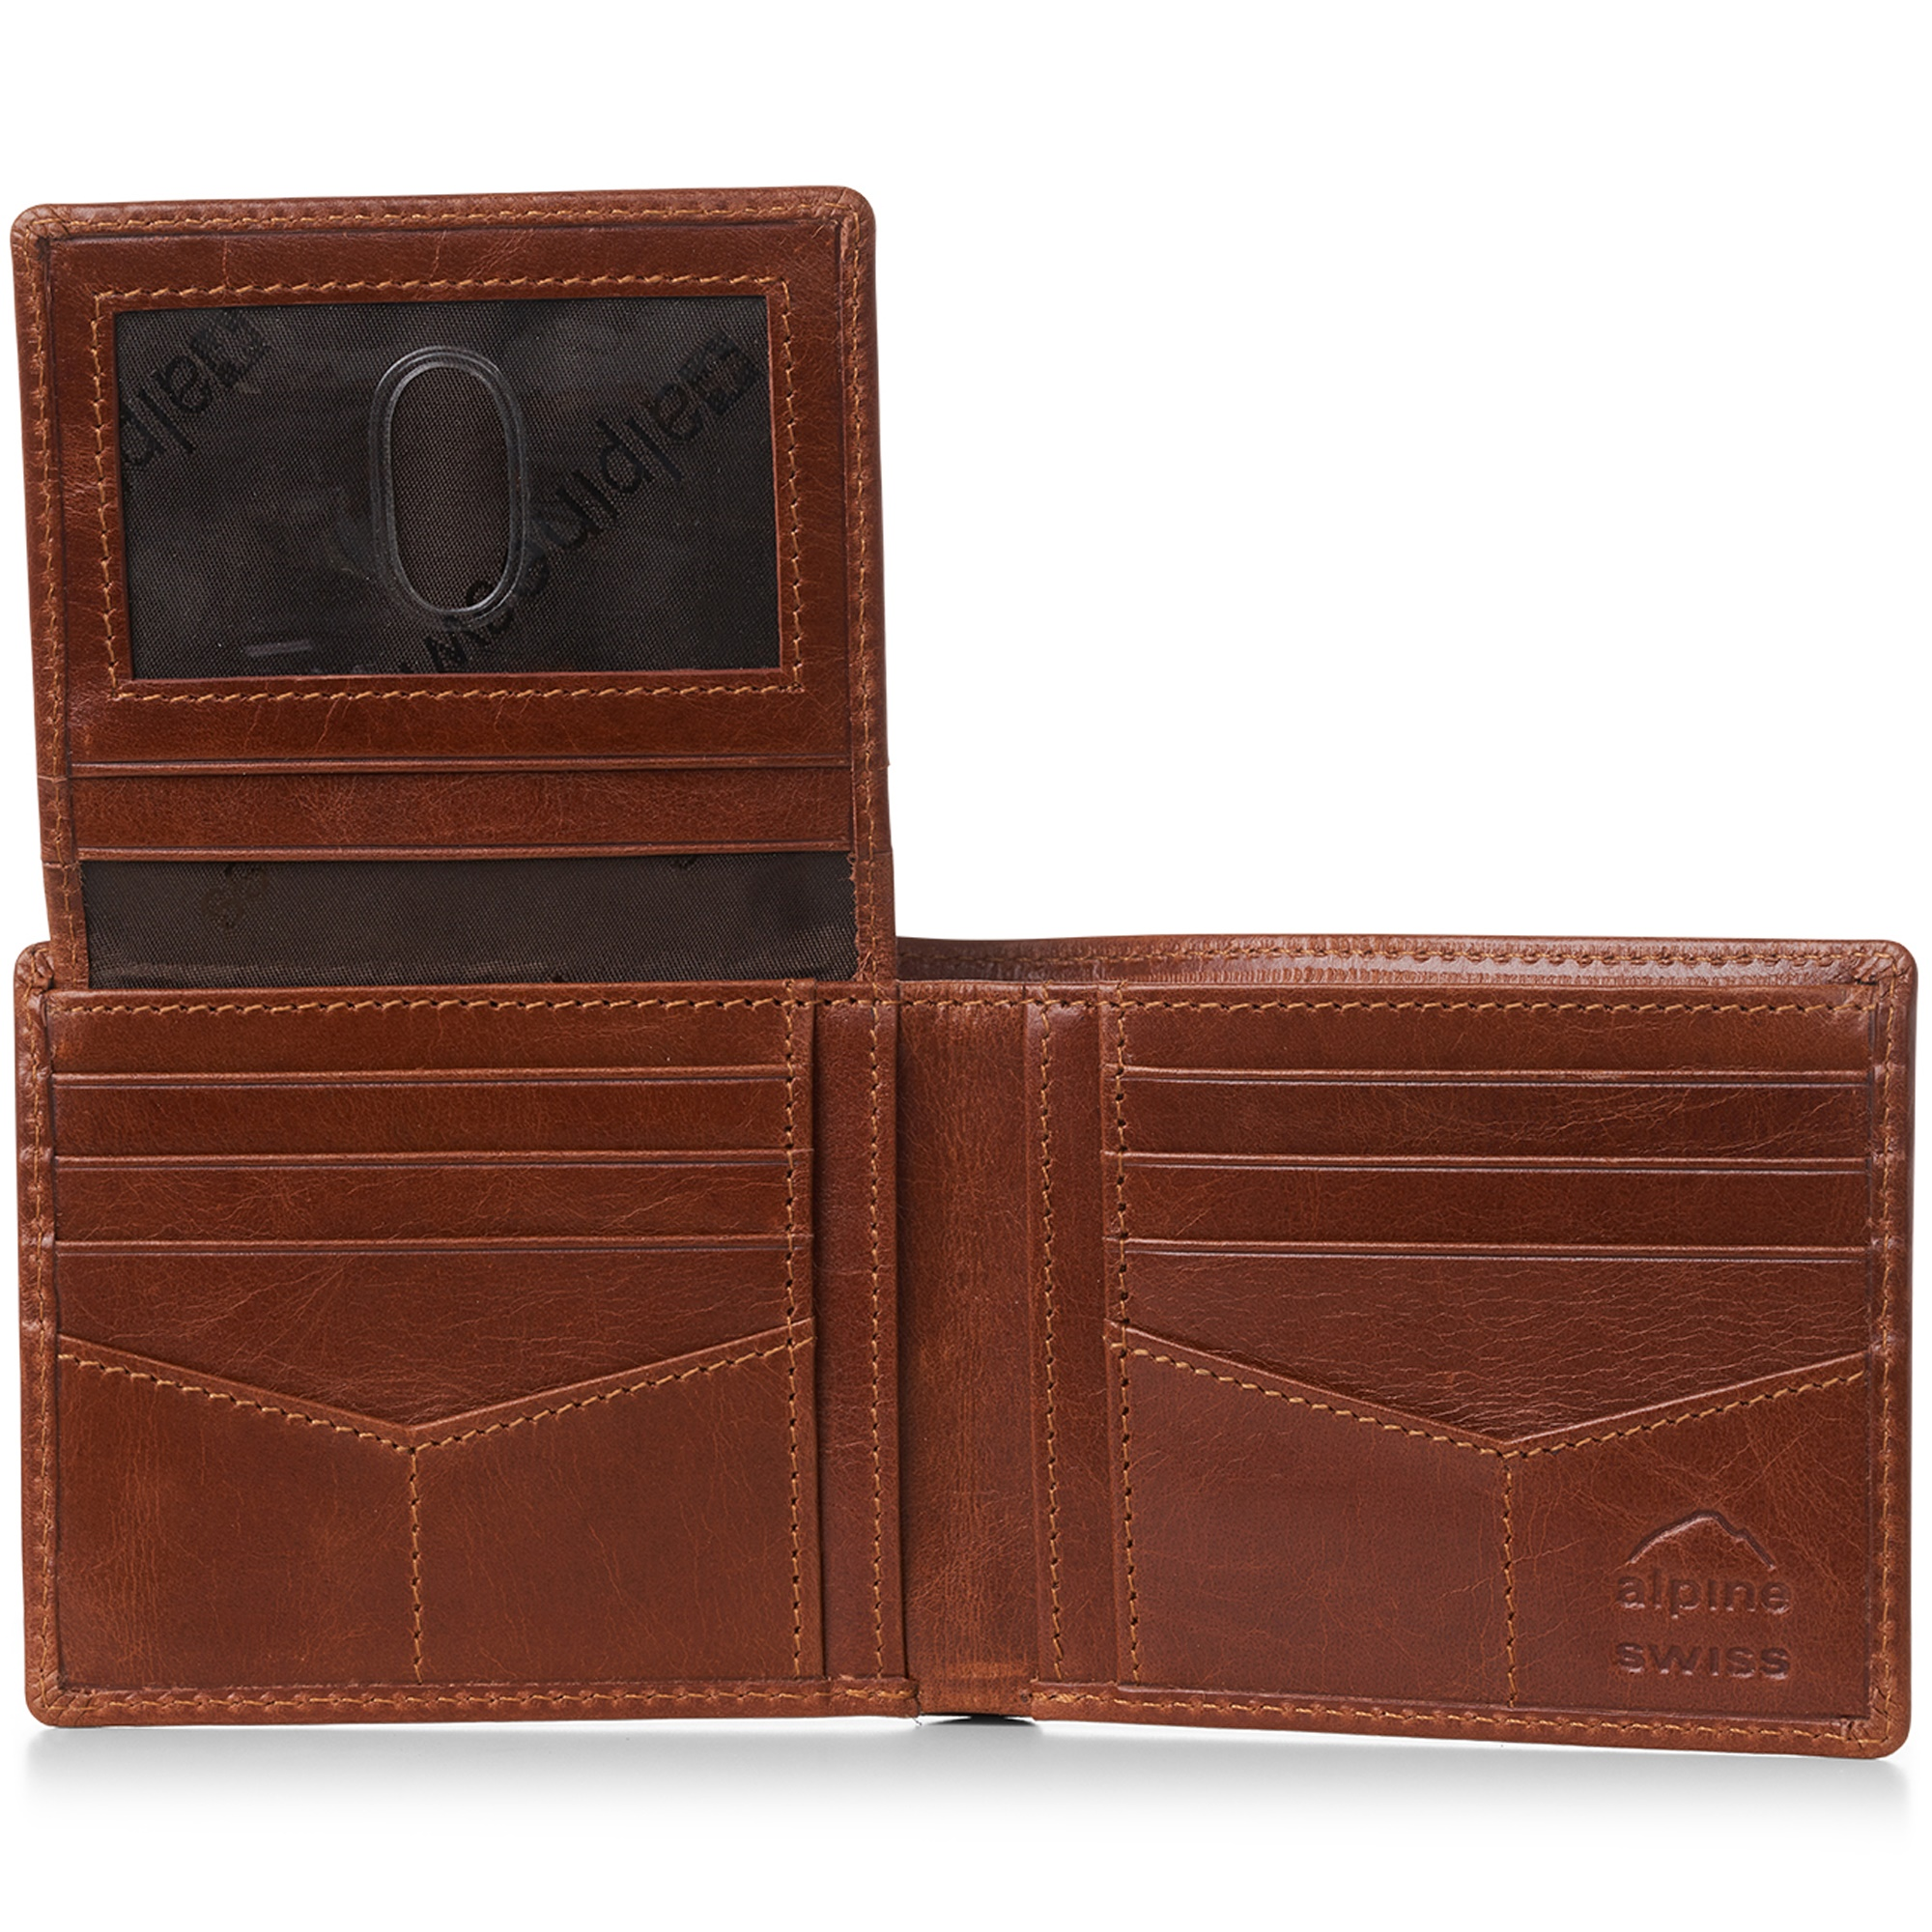 miniature 24 - Alpine-Swiss-RFID-Mens-Wallet-Deluxe-Capacity-Passcase-Bifold-Two-Bill-Sections